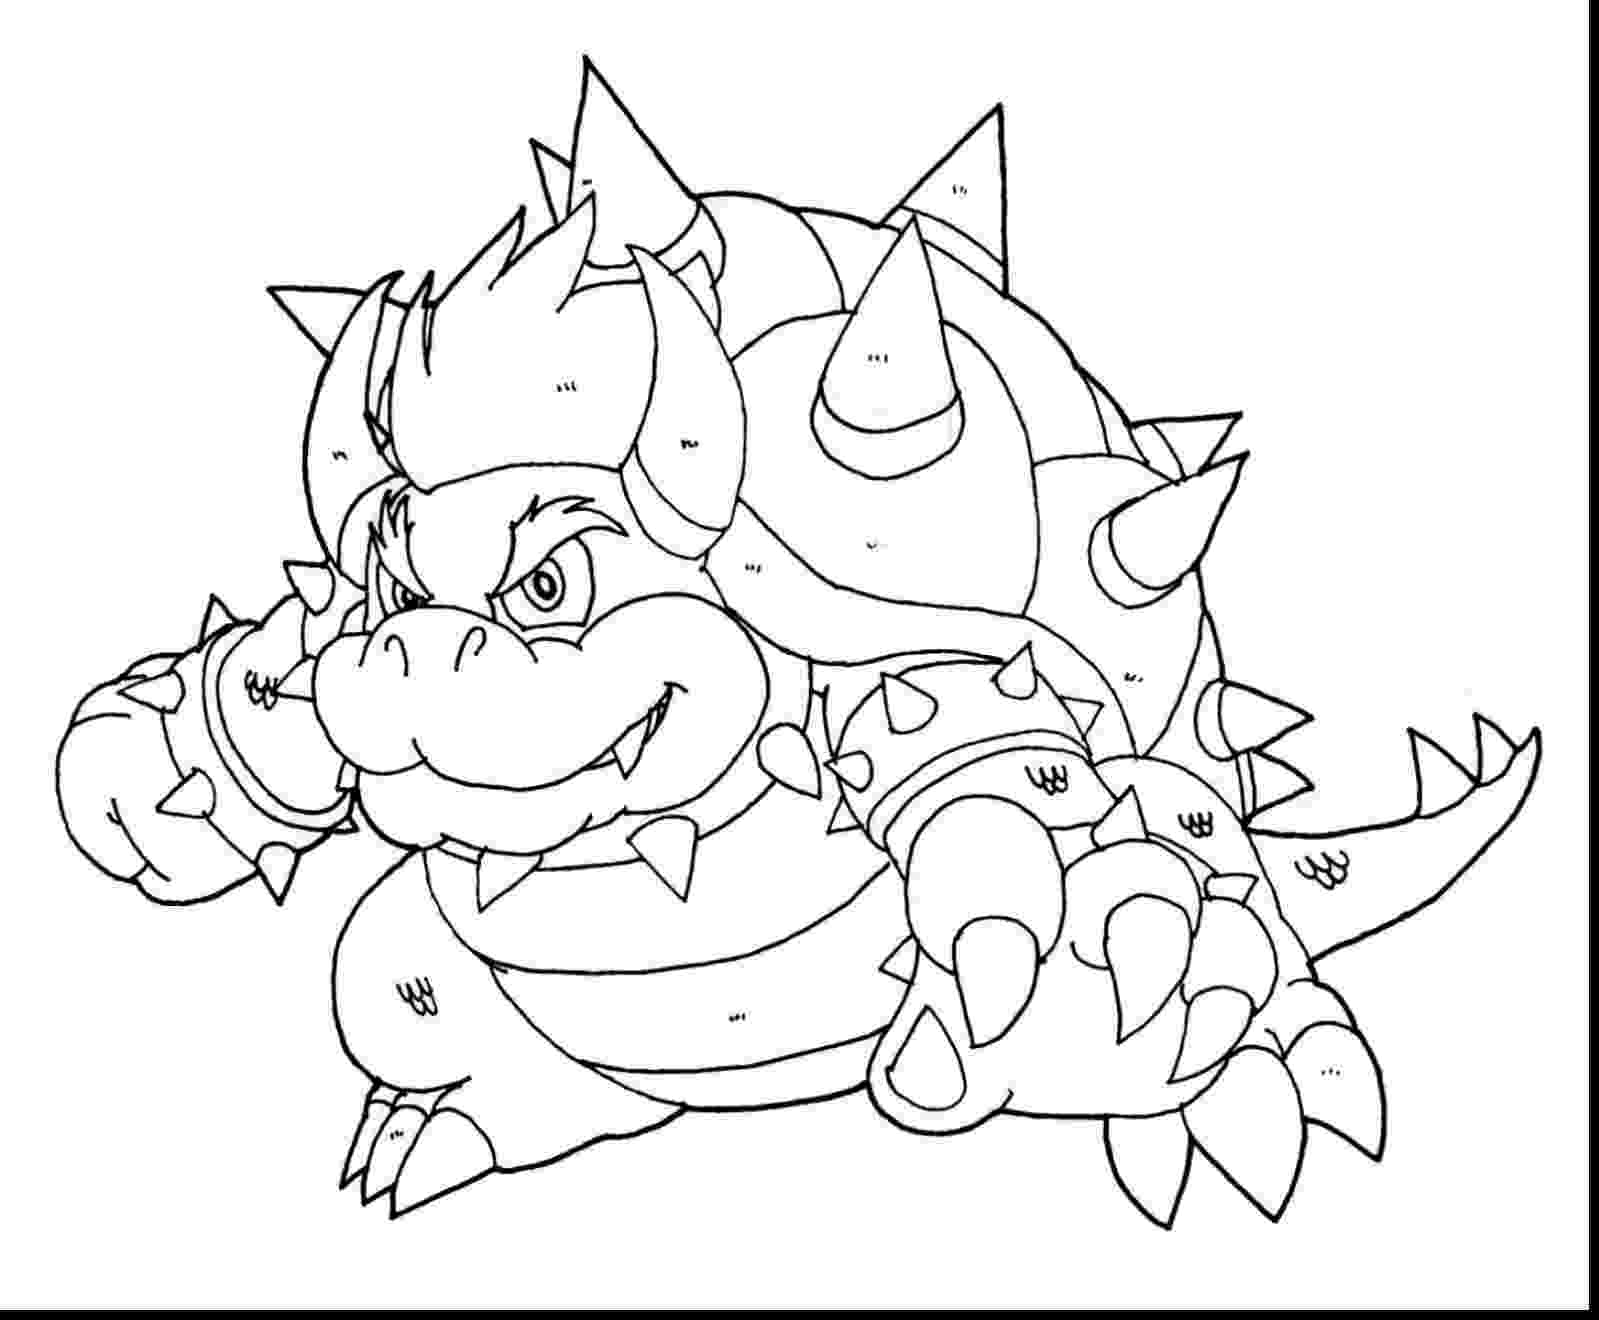 bowser picture dry bowser drawing at getdrawingscom free for personal bowser picture